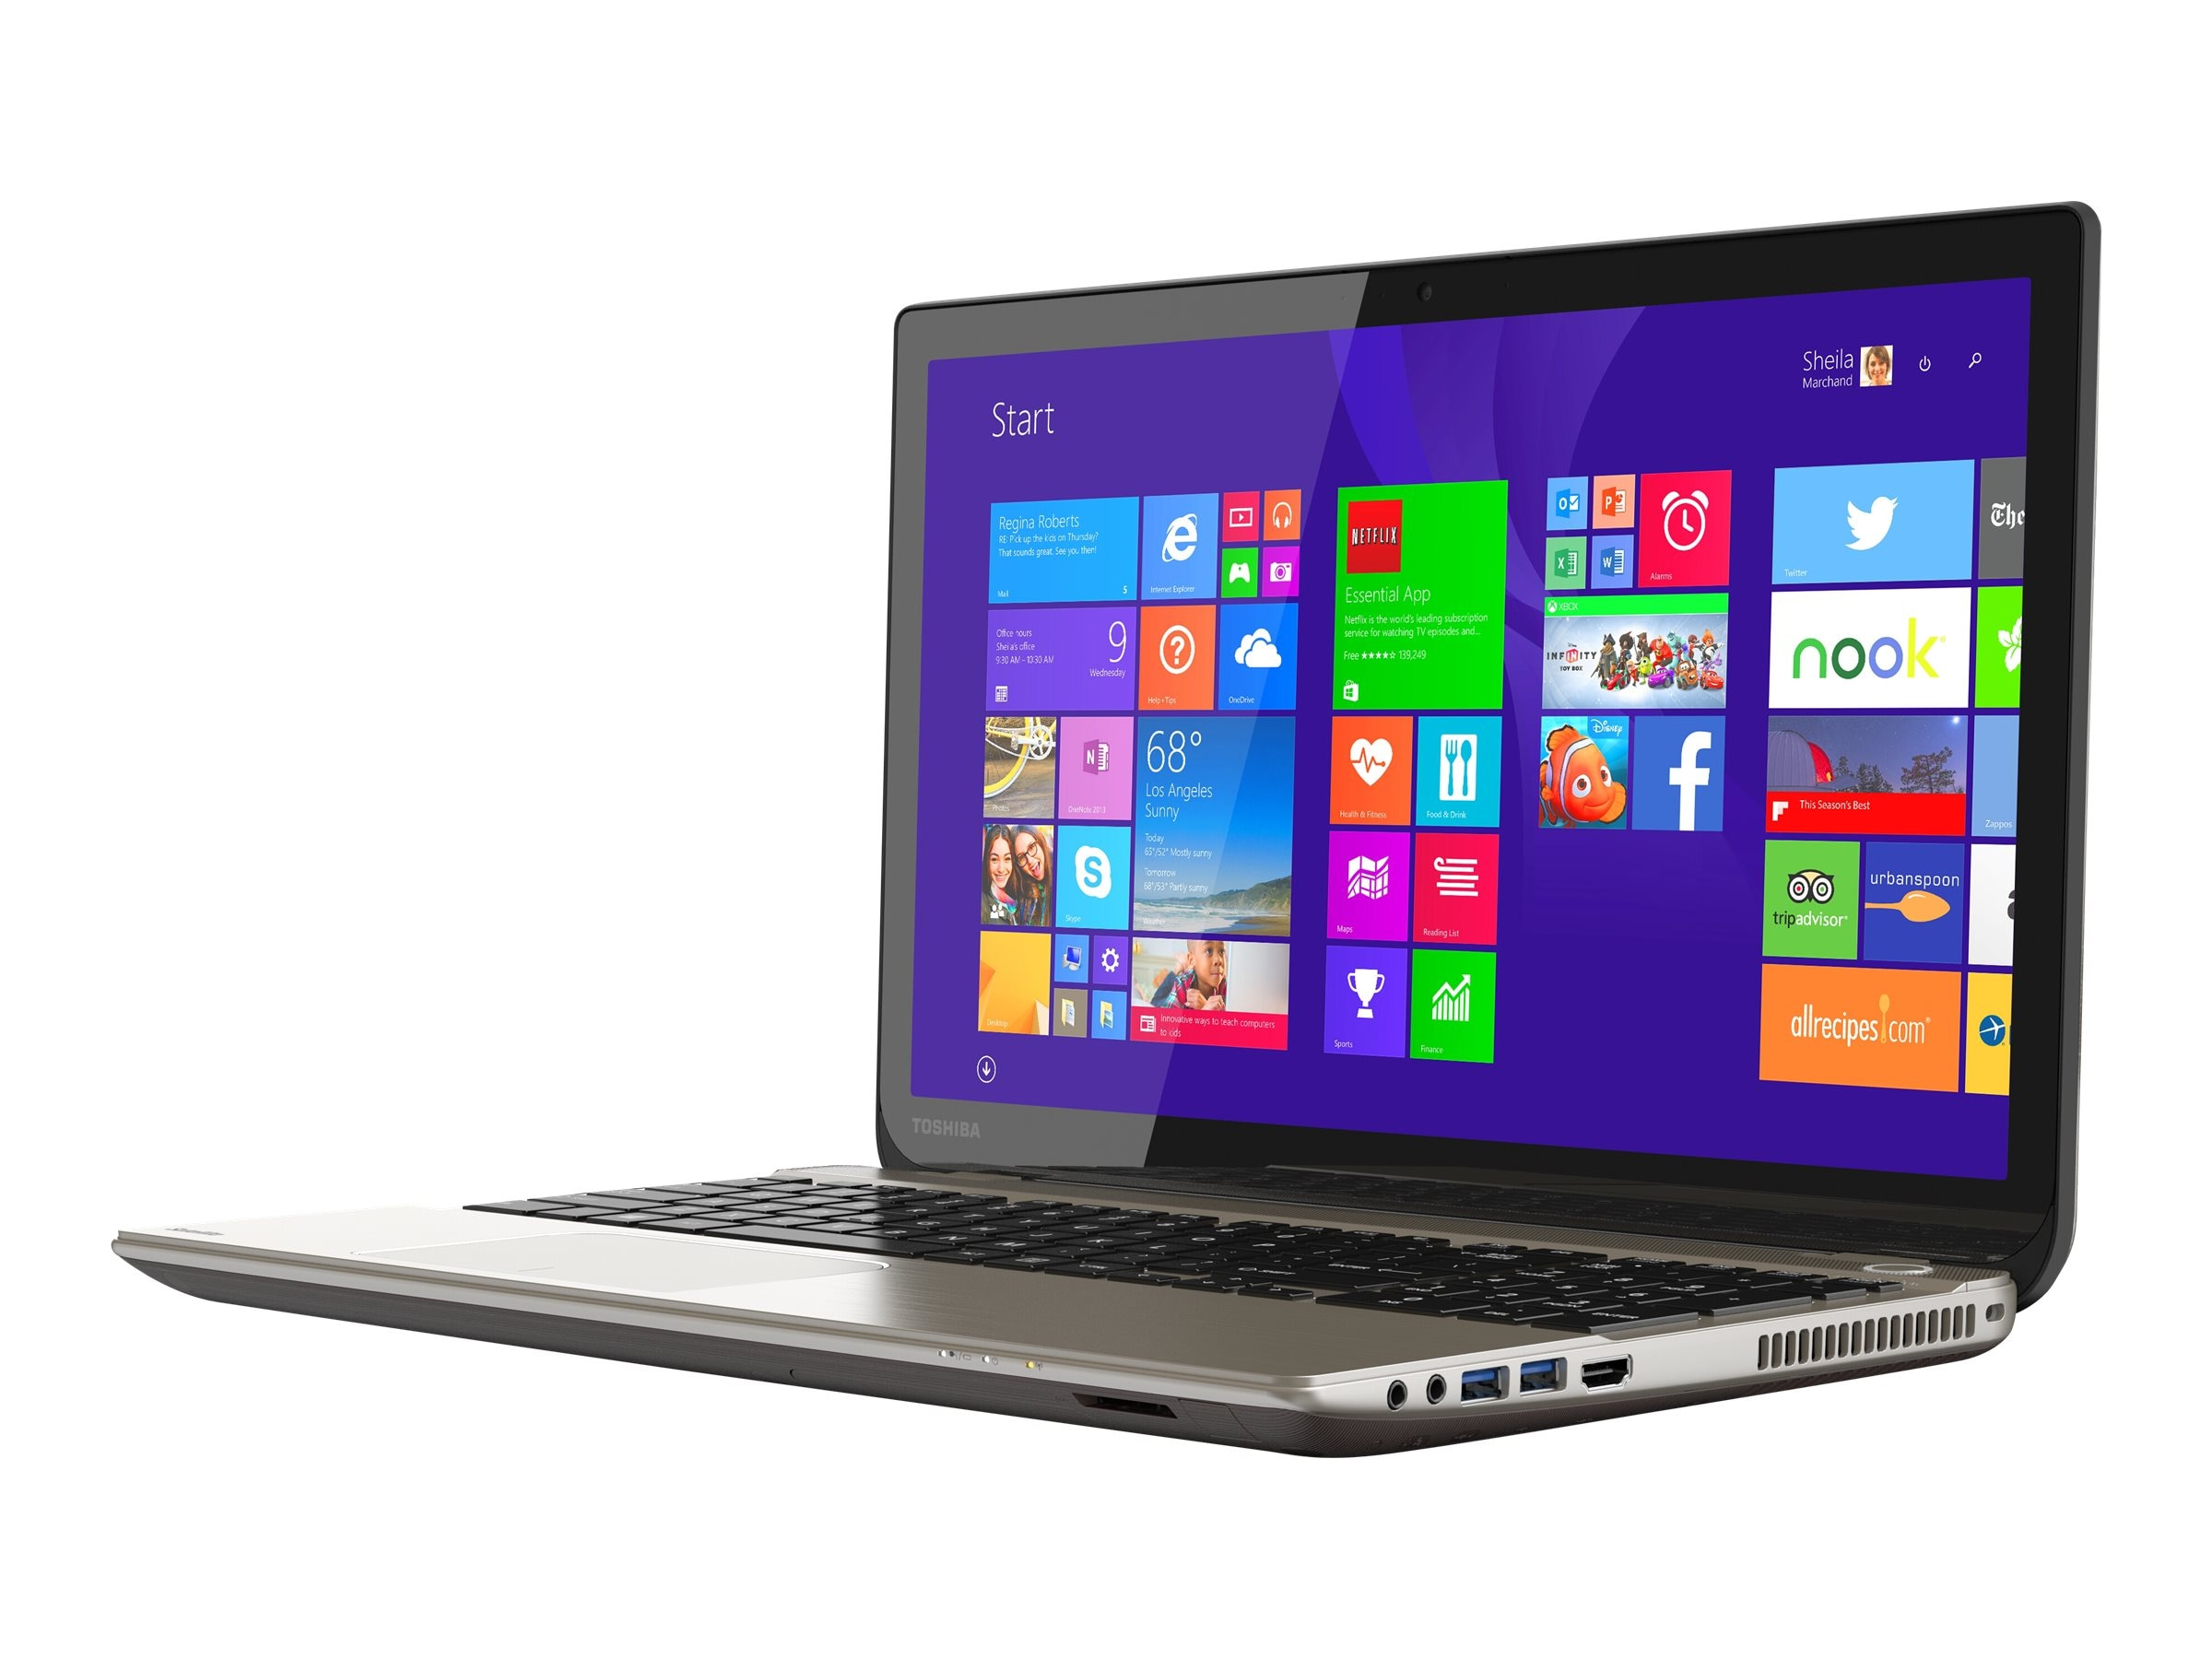 Toshiba Satellite P55T-B5262 2.5GHz Core i7 15.6in display, PSPNVU-00U00W, 17372089, Notebooks